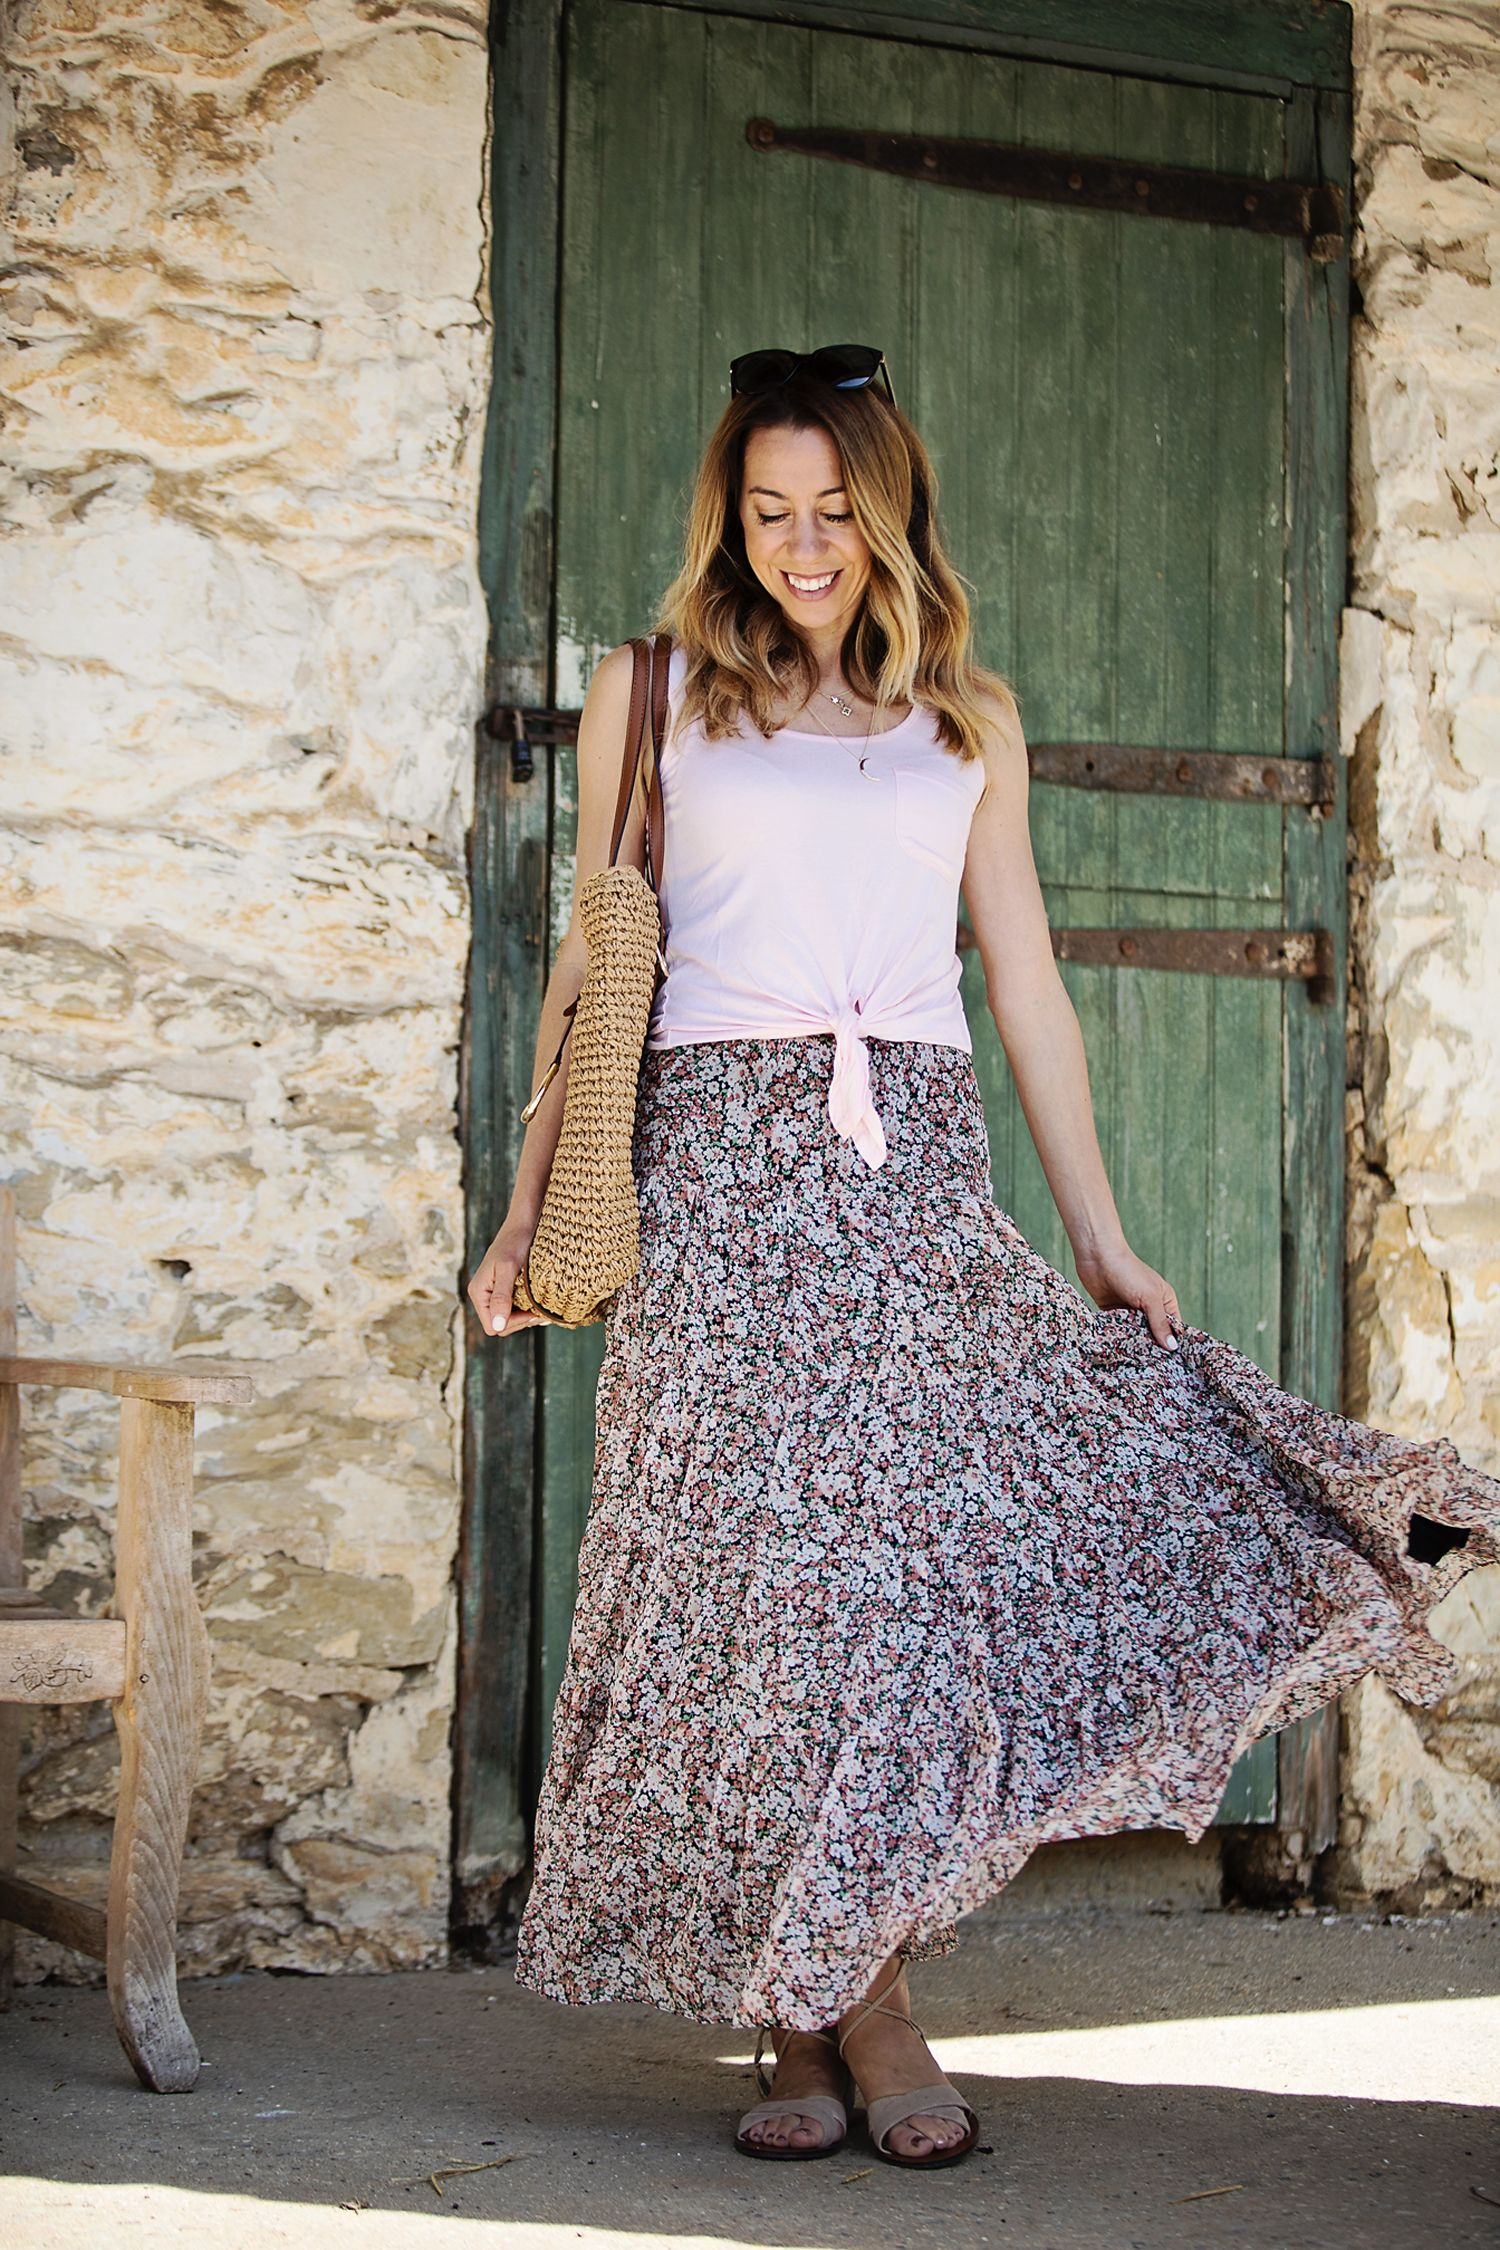 Floral maxi skirt summer outfit ideas and fashion for women over